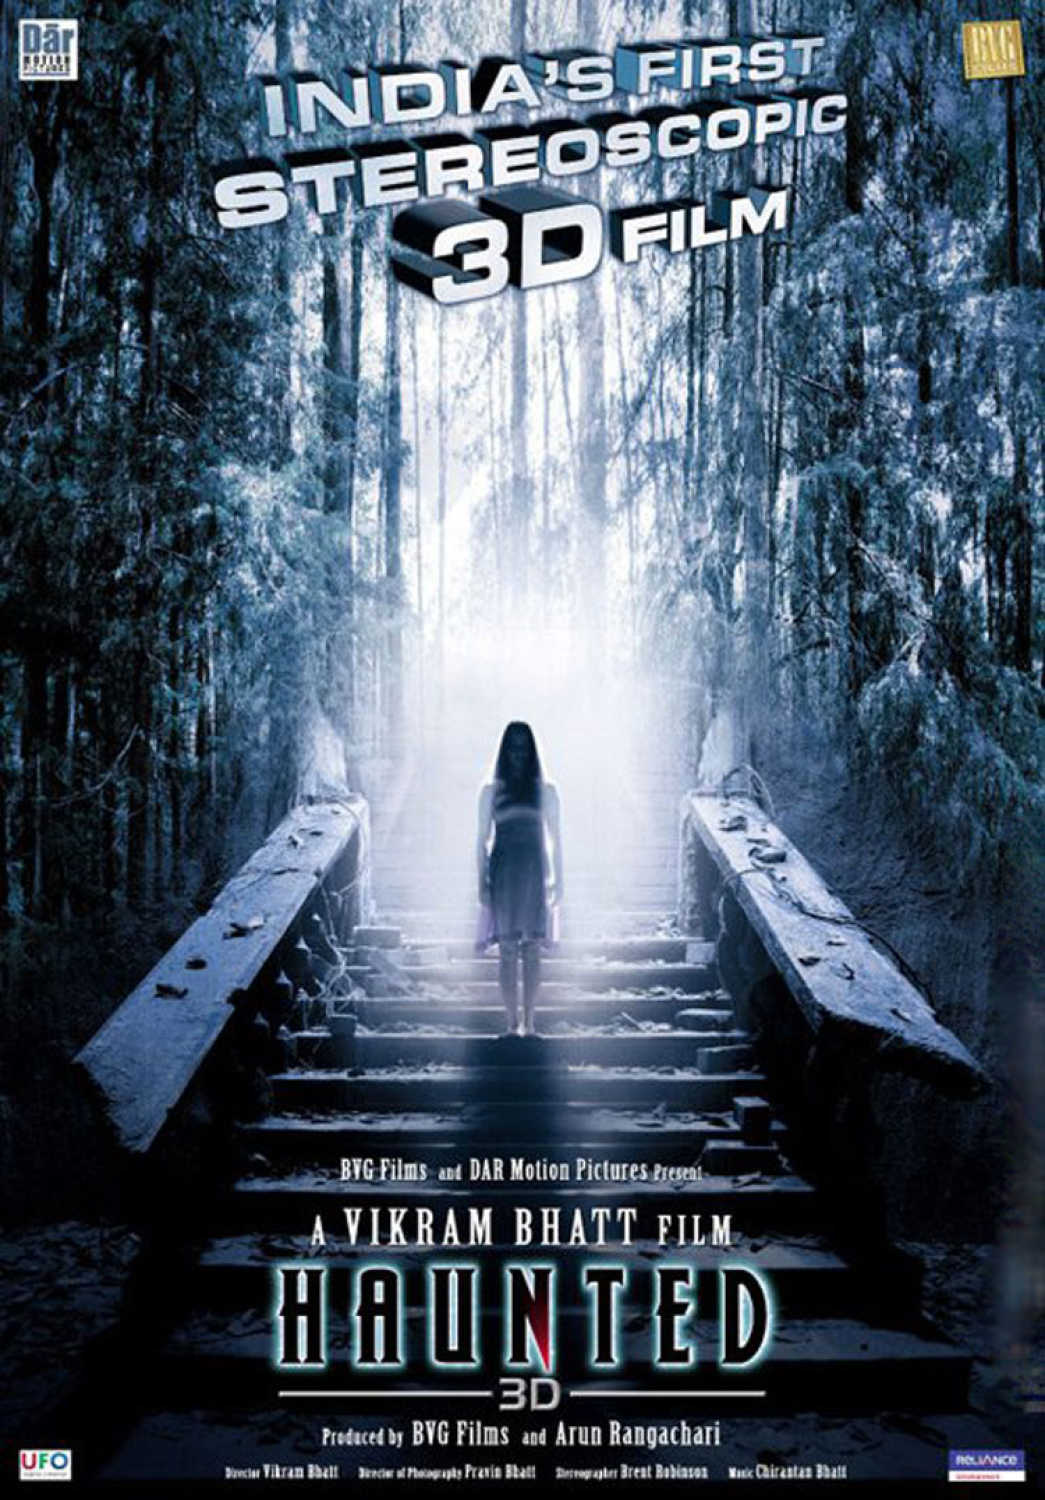 Haunted 2011 Hindi 720p HDRip x264 AC3 – Hon3y | 3 GB |